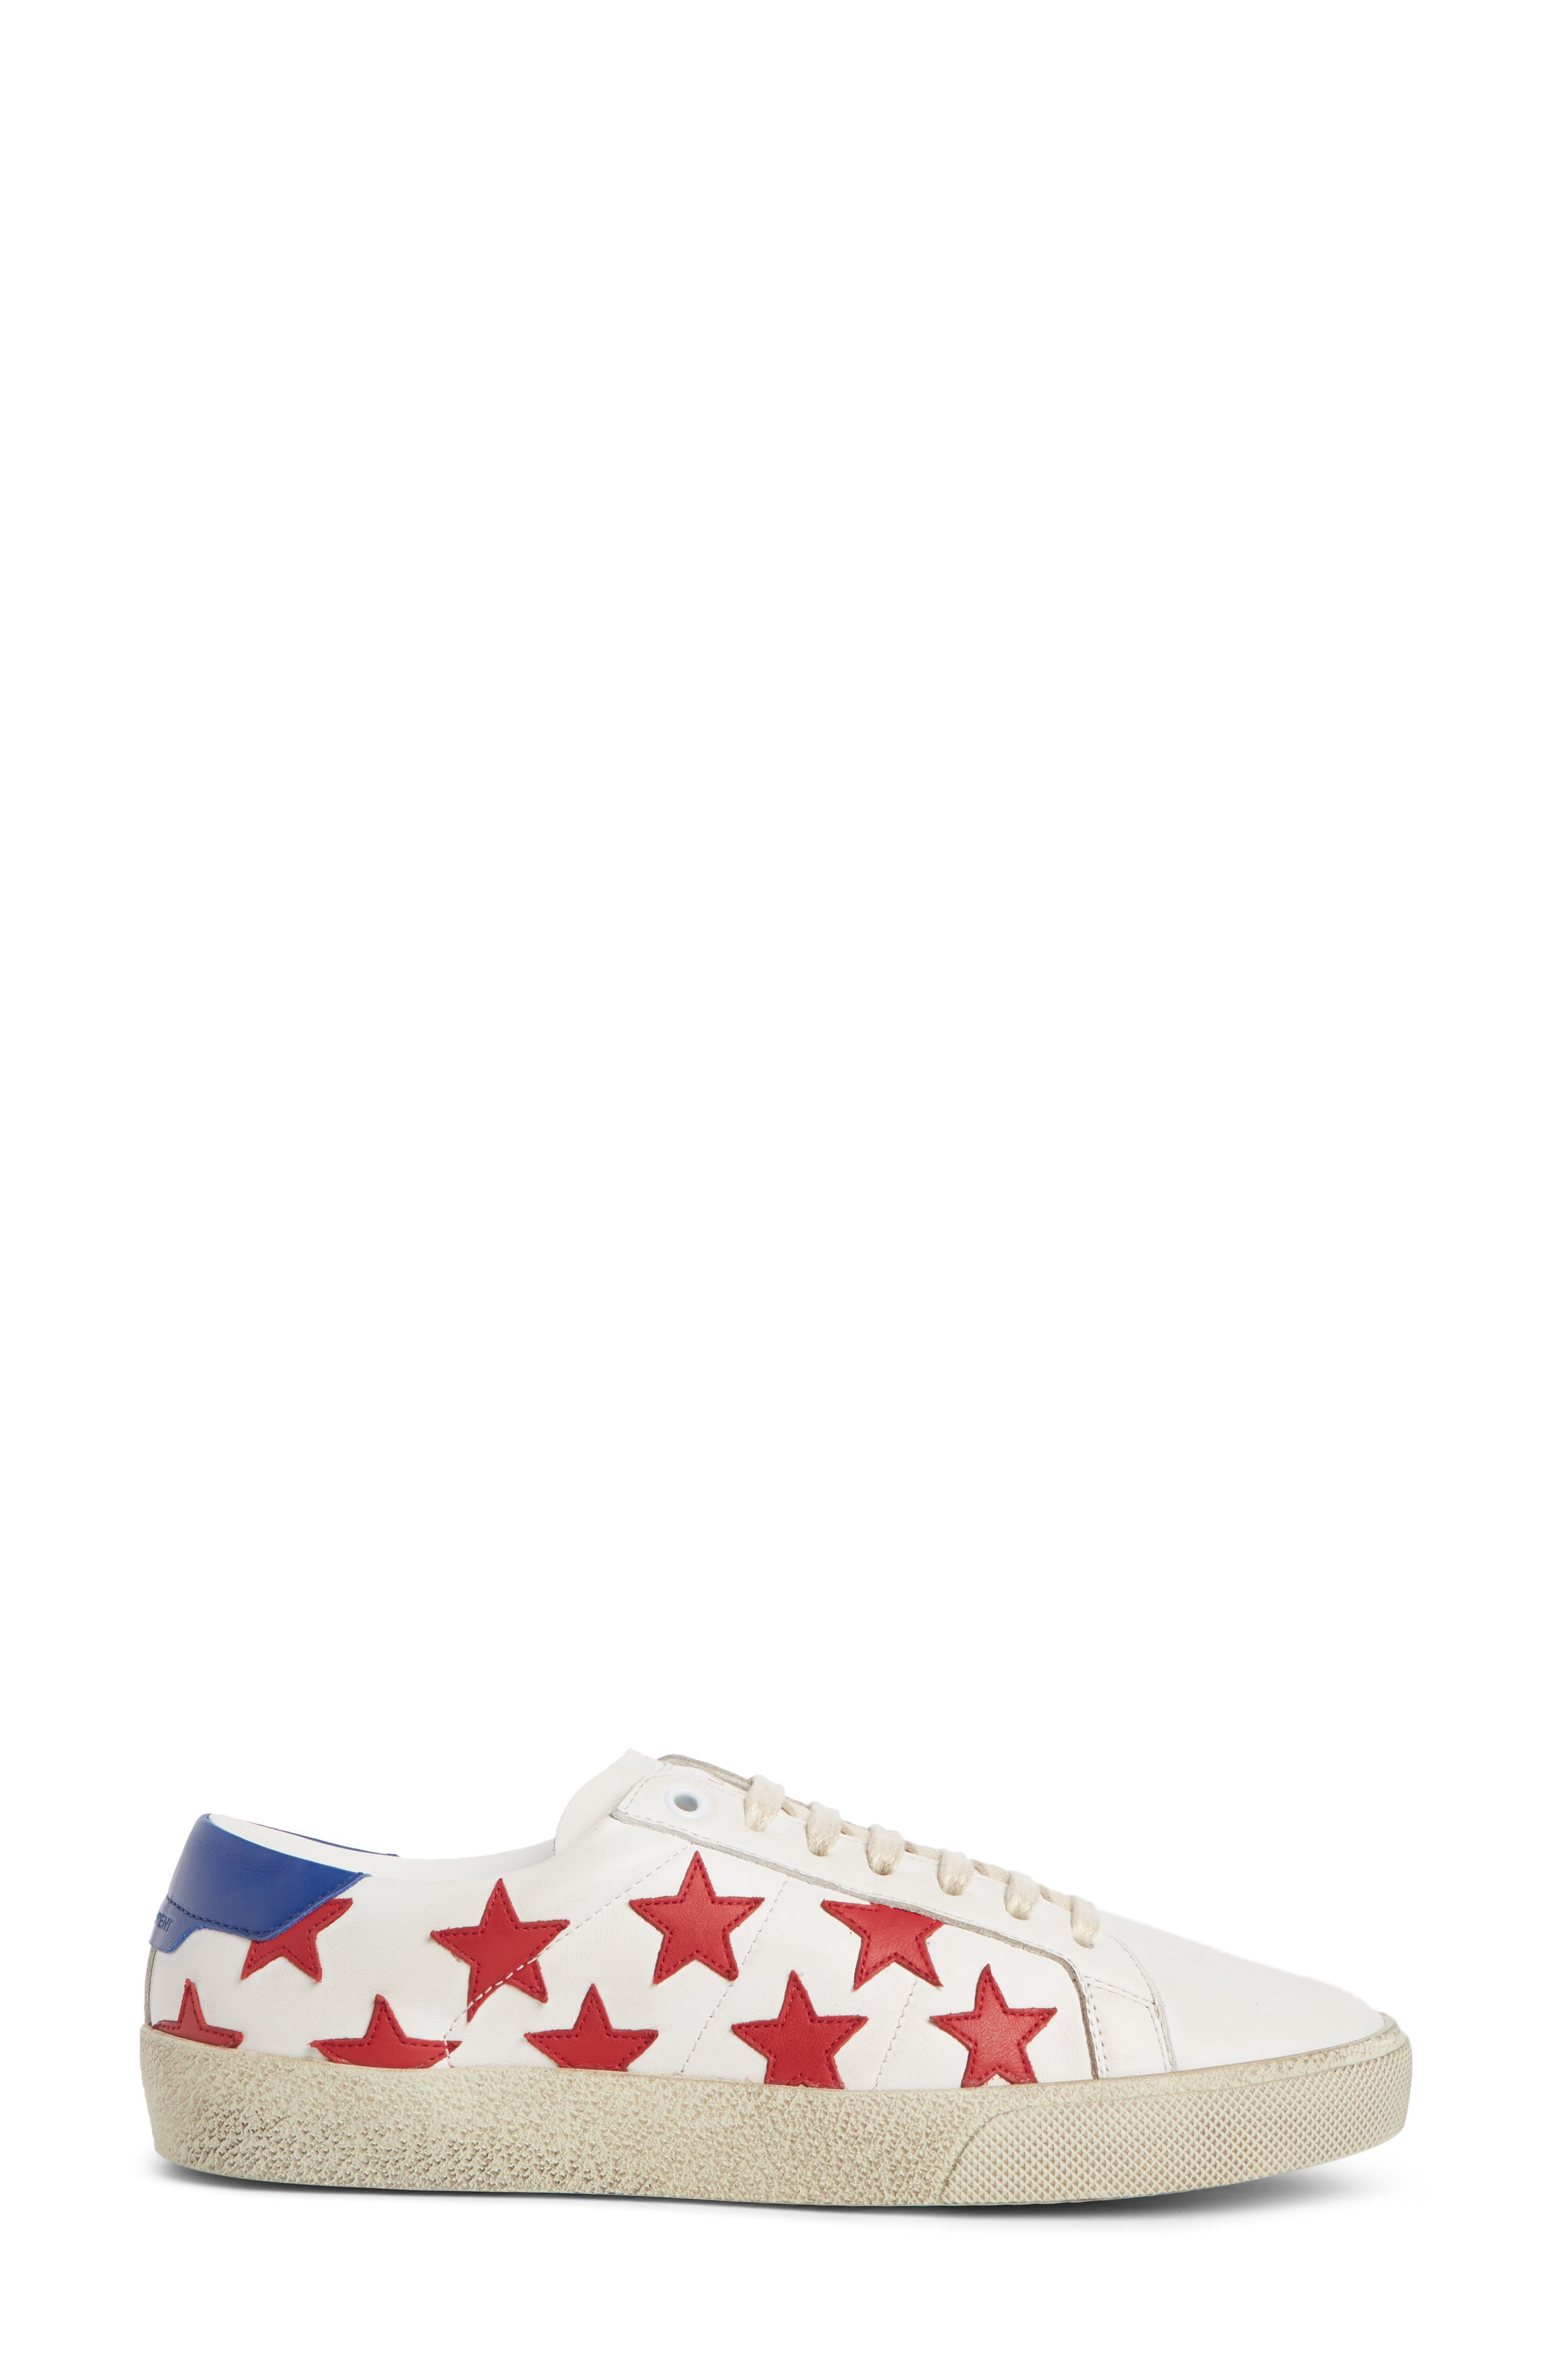 SAINT LAURENT, Classic Court Sneaker, Alternate thumbnail 3, color, WHITE/ RED